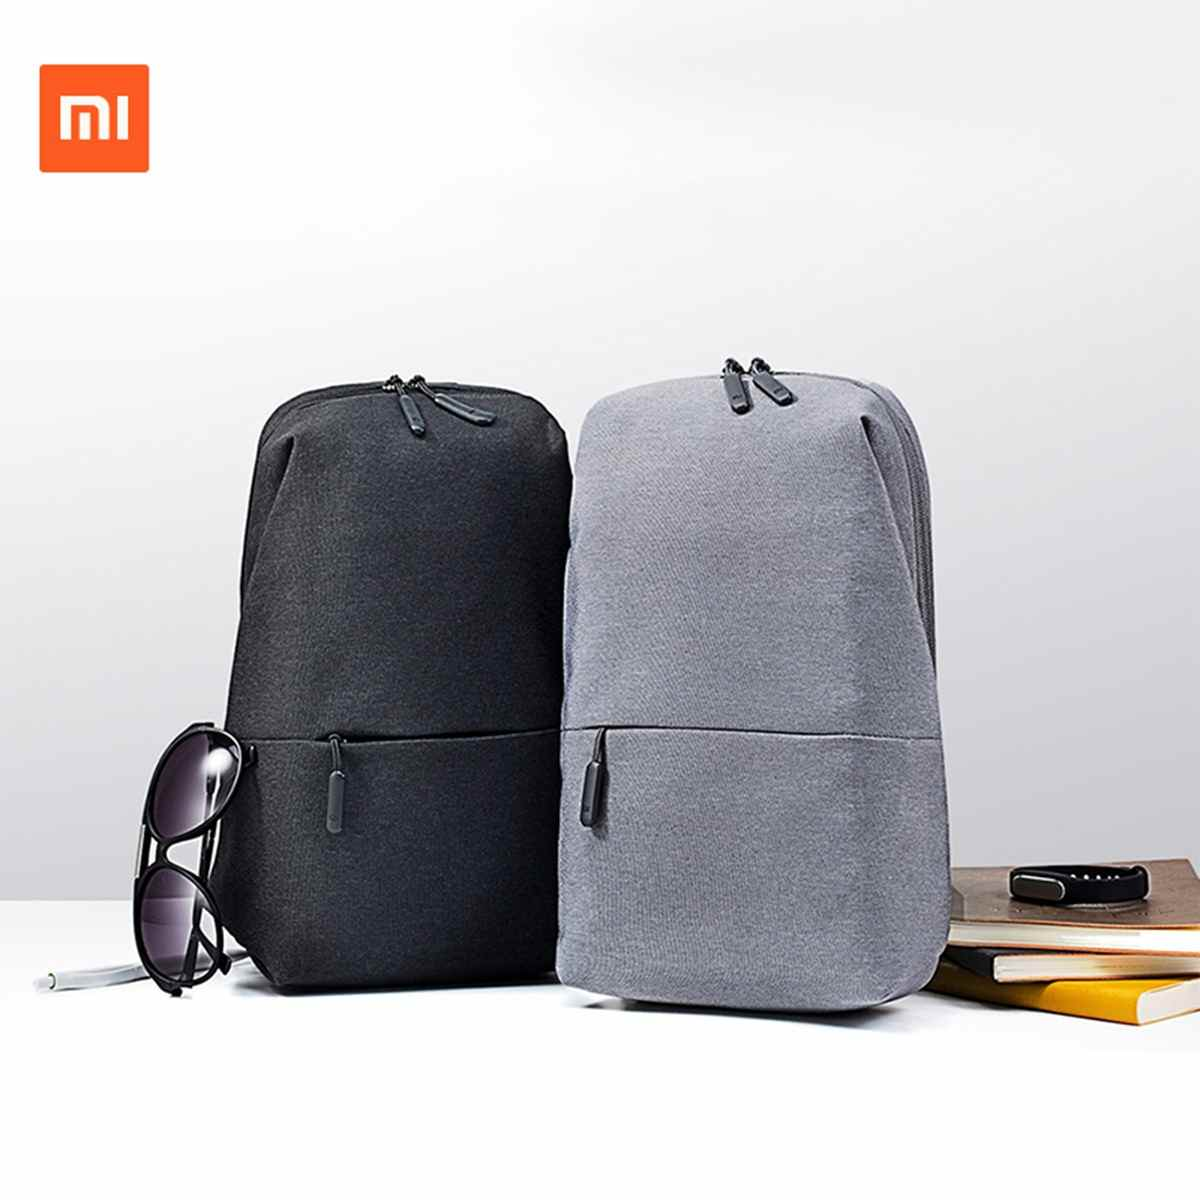 100% Xiaomi Mi Backpack Bag Urban Leisure Sports Chest Pack For Men Women Shoulder Bags Unisex Rucksack Laptop Travle Bags